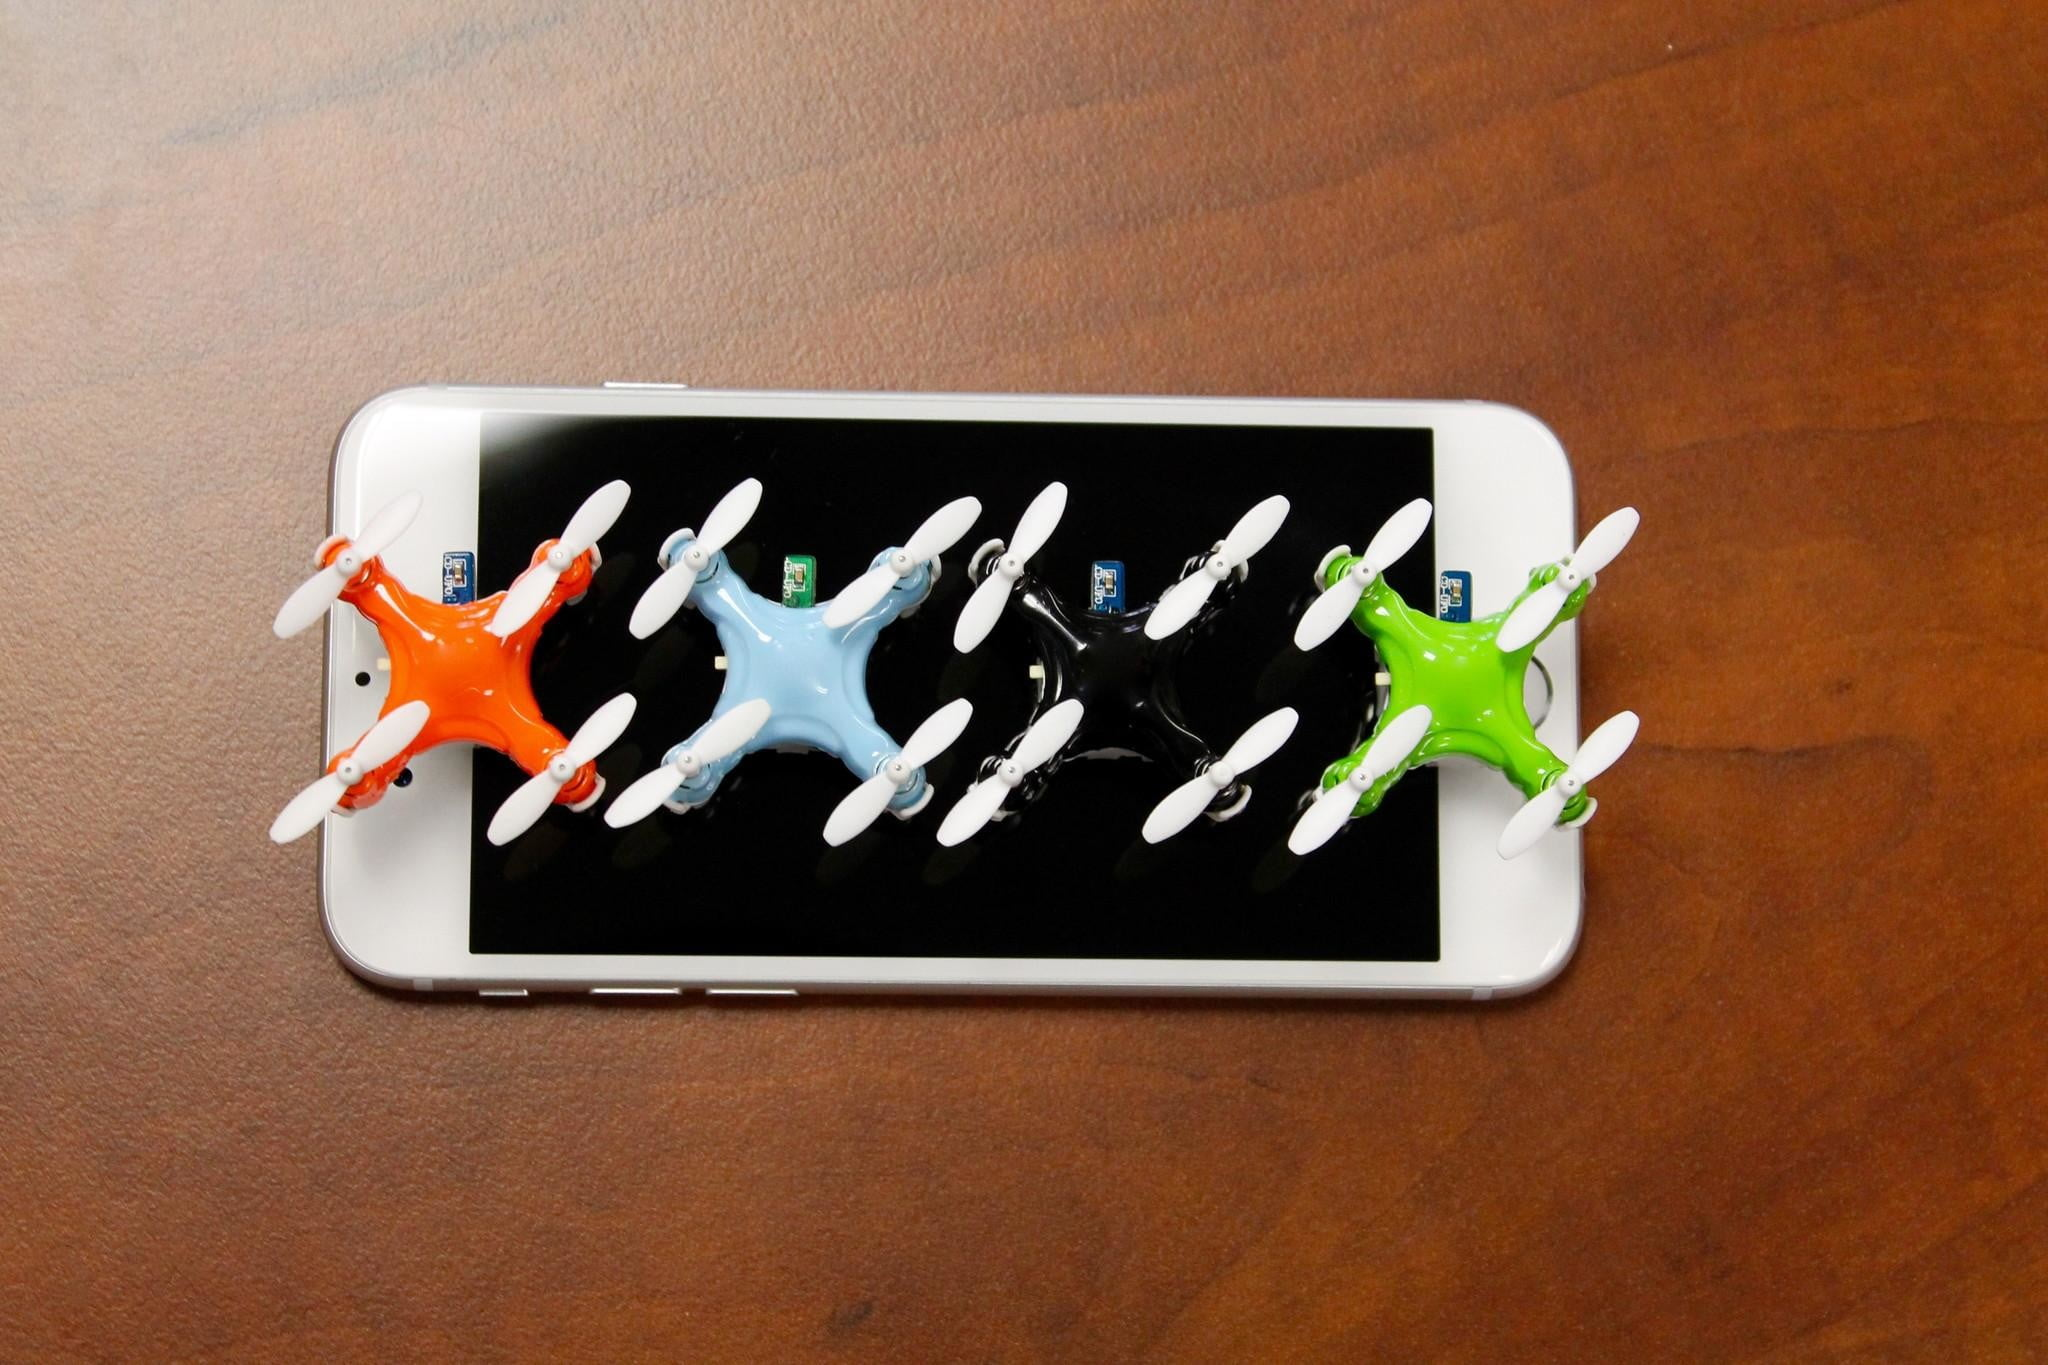 worlds smallest drone aerius 2015 img 4131